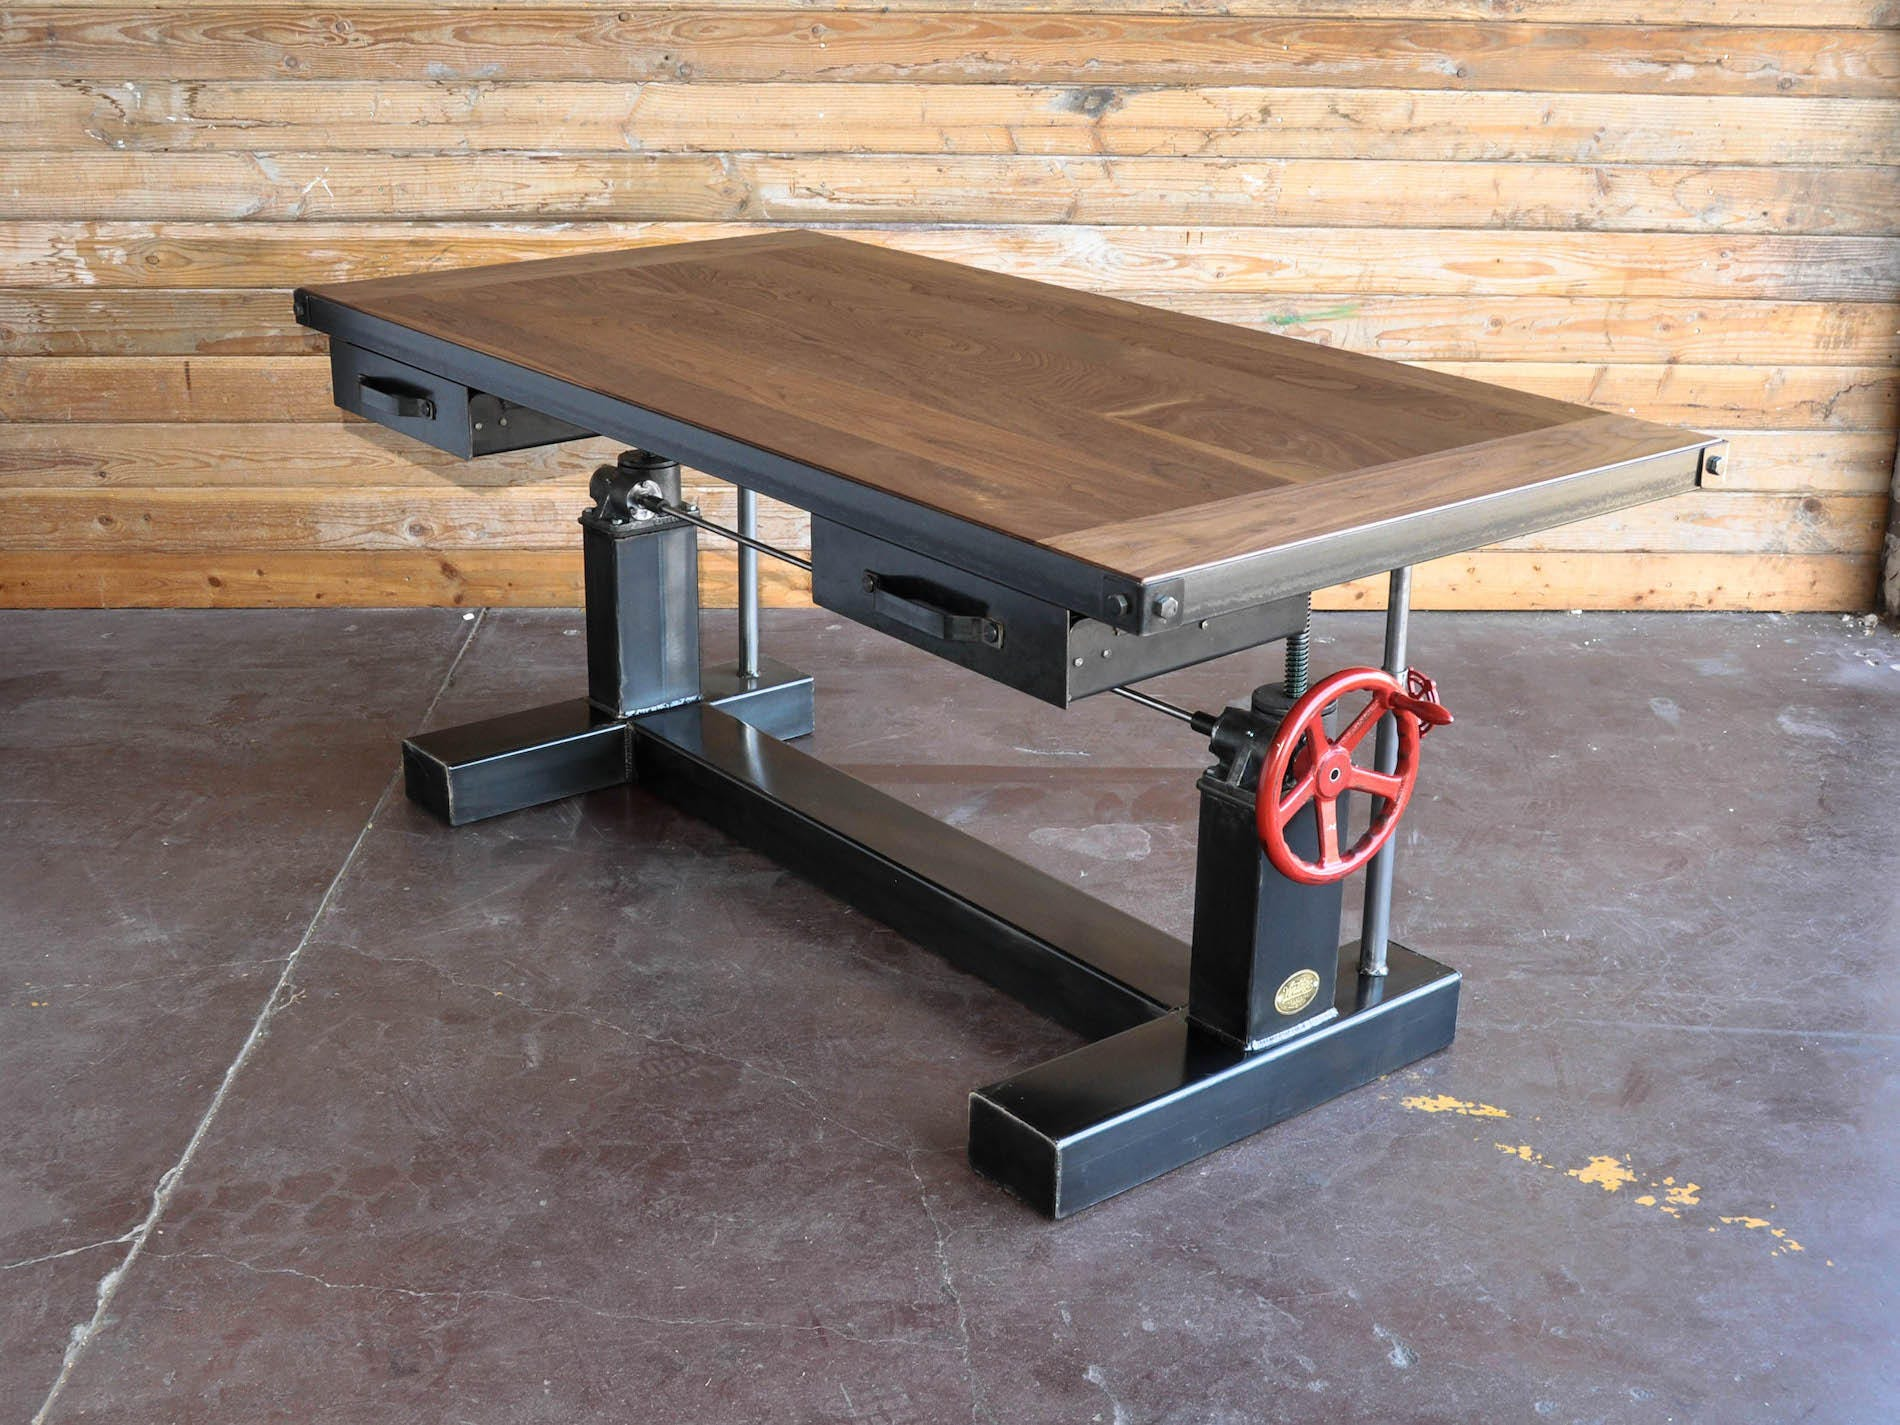 French Industrial Adjustable Height Desk Vintage work Table